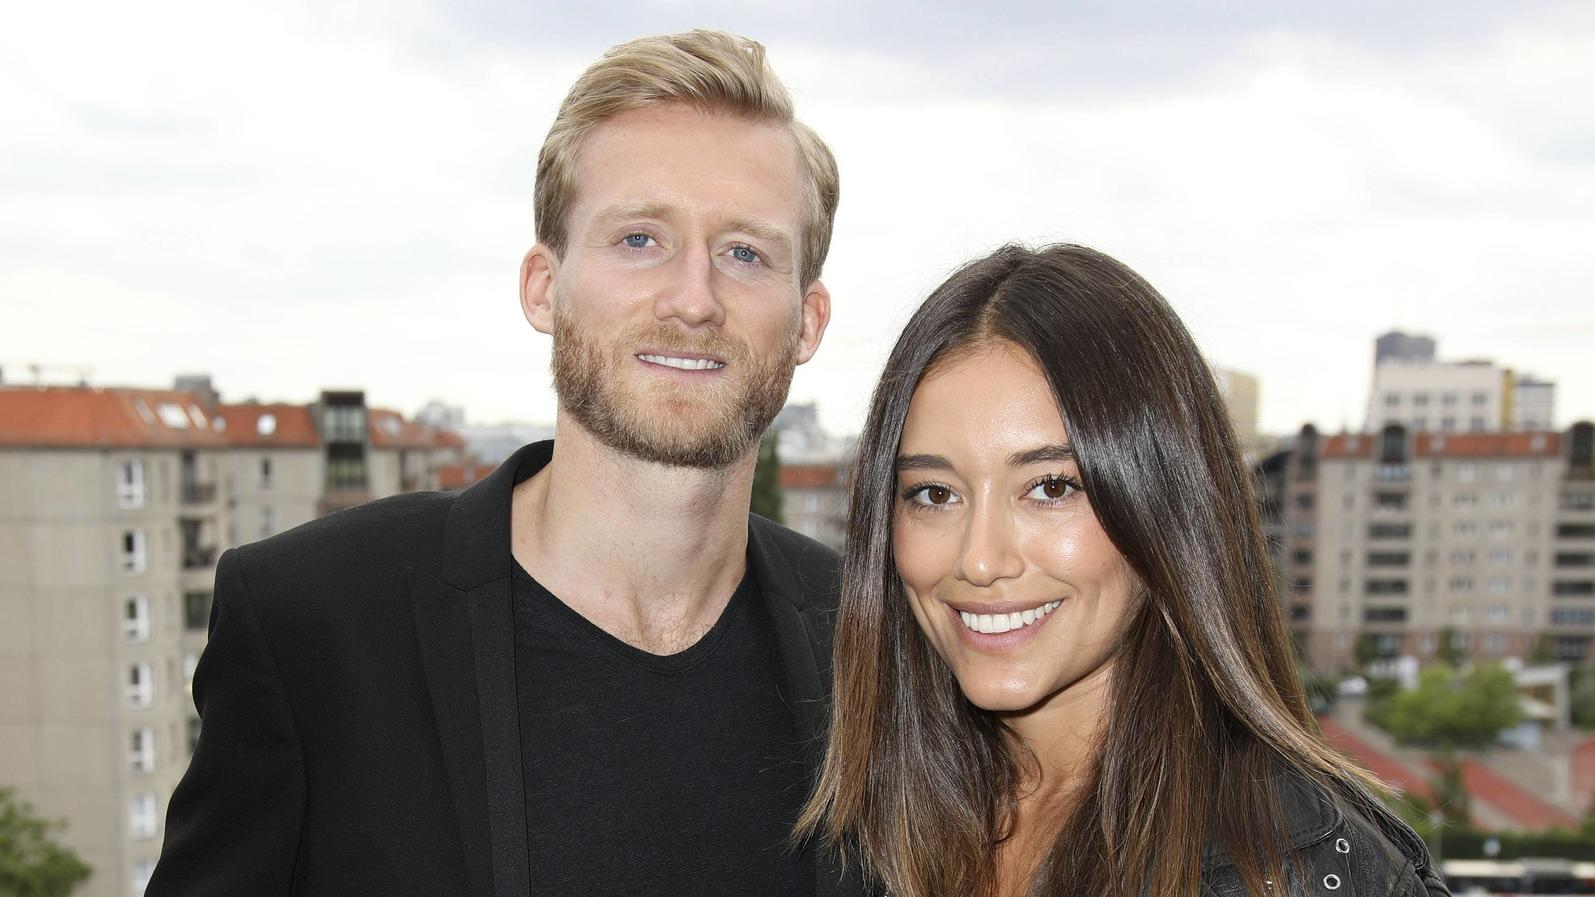 Andre Schürrle mit Freundin Anna Sharypova beim Thomas Sabo Press Cocktail auf der Berlin Fashion Week Spring/Summer 2018 im China Club. Berlin, 05.07.2017 Foto:xS.xGabschx/xFuturexImage